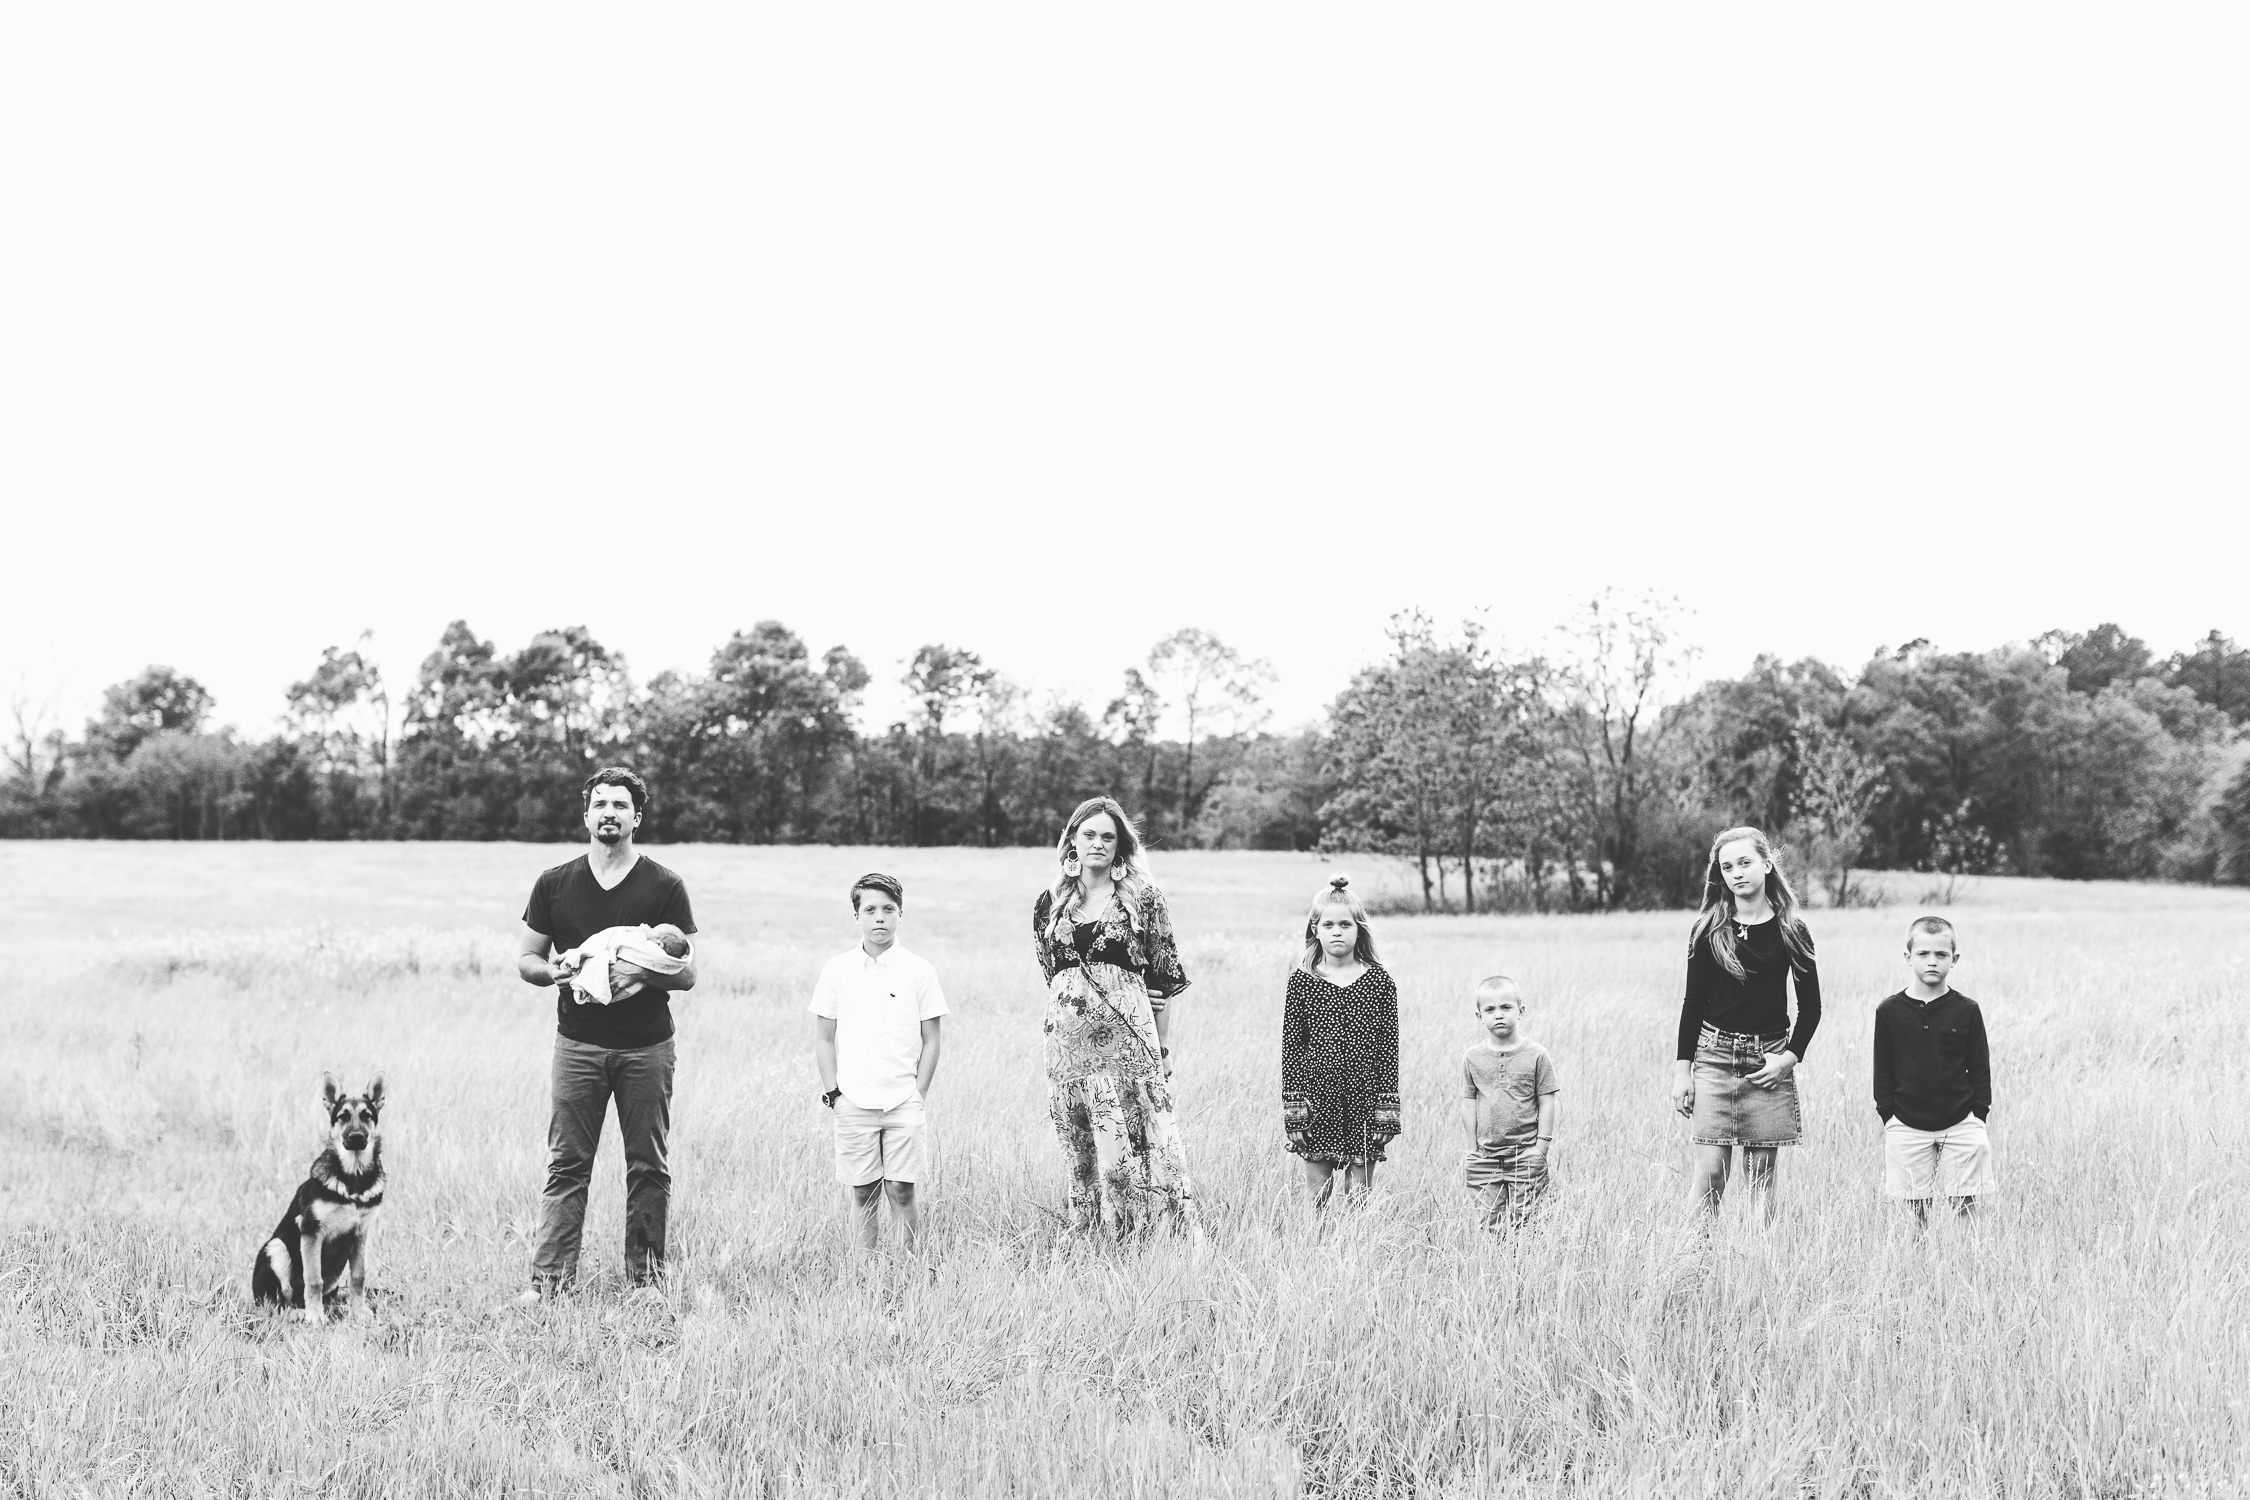 poses, inspiration, colorful, vibrant, at home, emotion, portraits, Knoxville, country, outdoors, Tennessee, editorial, fun, creative, family, lifestyle, newborn, family, field, summer, siblings, black and white